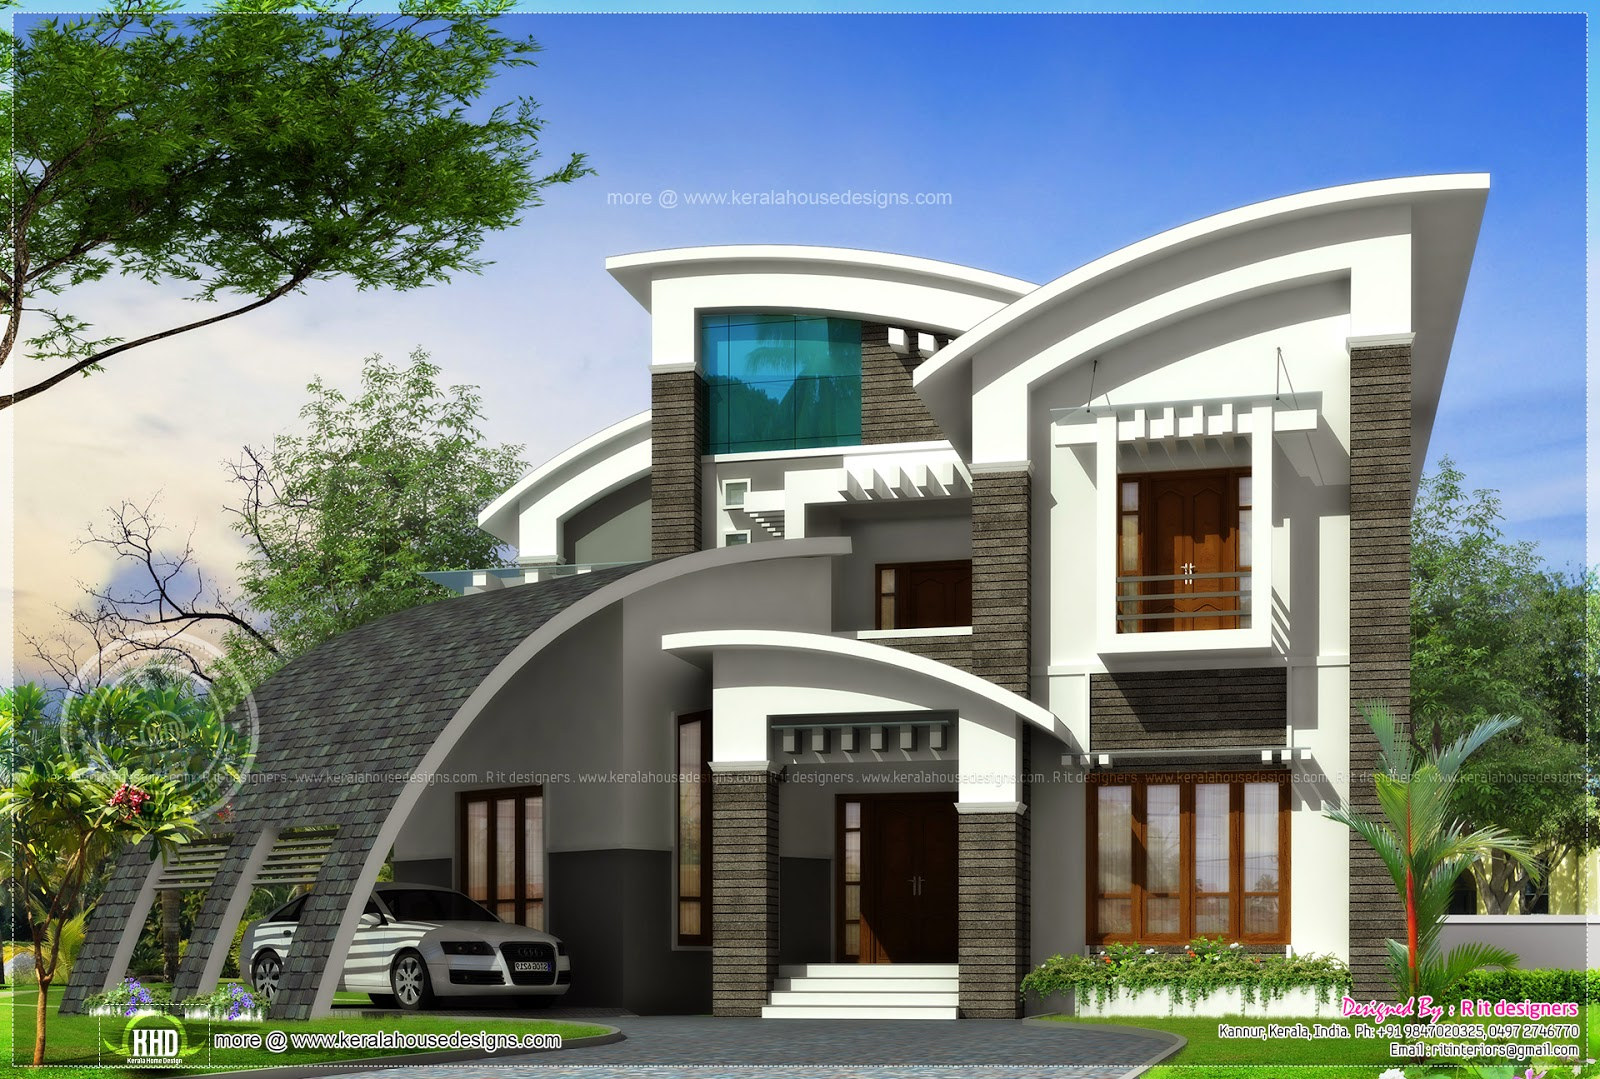 Super luxury ultra modern house design kerala home for Luxury home design plans